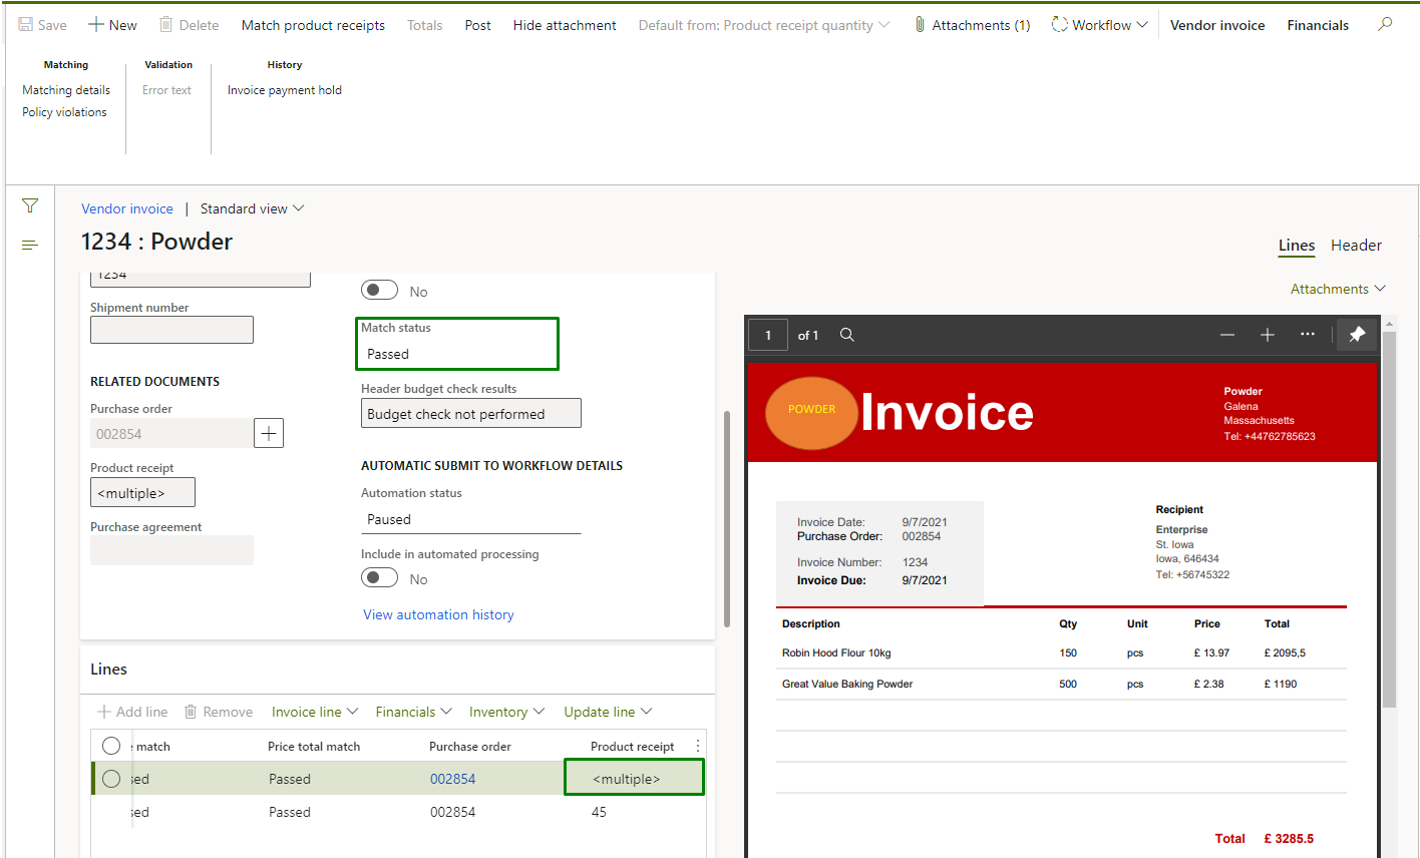 Vendor invoice automation_Pic. 7 – Vendor invoice side by side view (revision after matching)